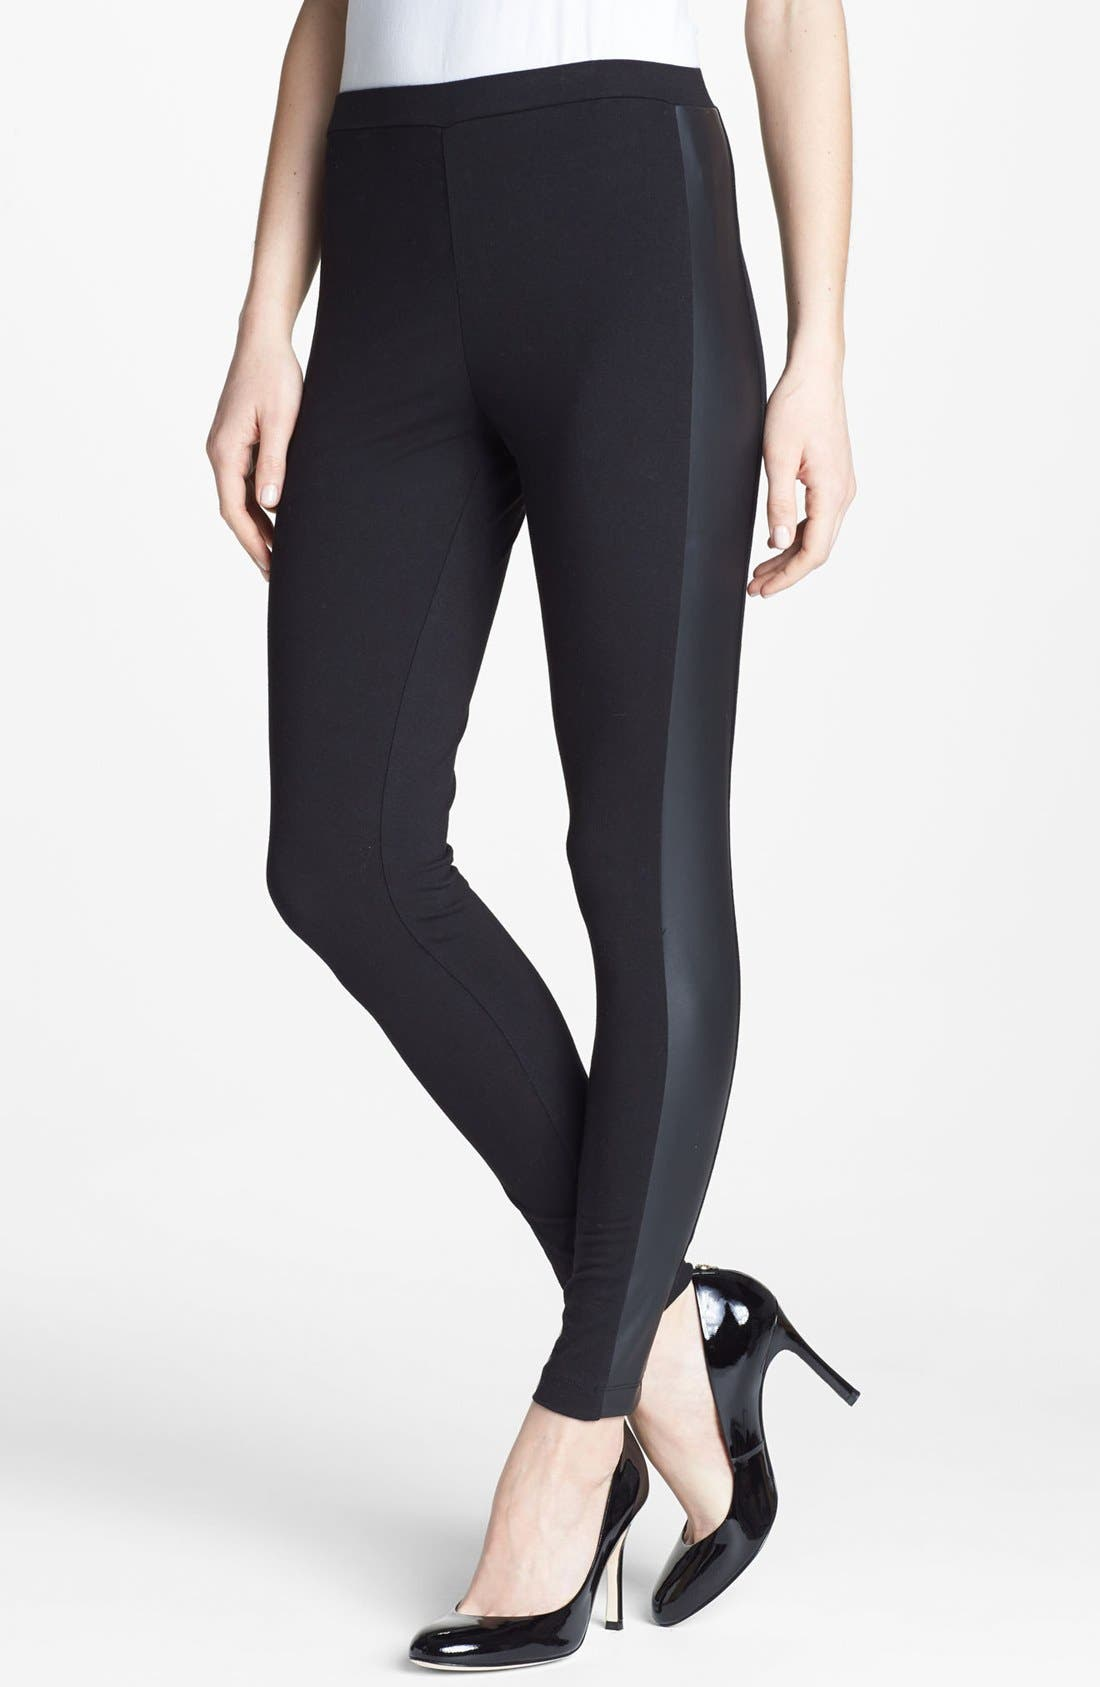 Alternate Image 1 Selected - Two by Vince Camuto Faux Leather Trim Leggings